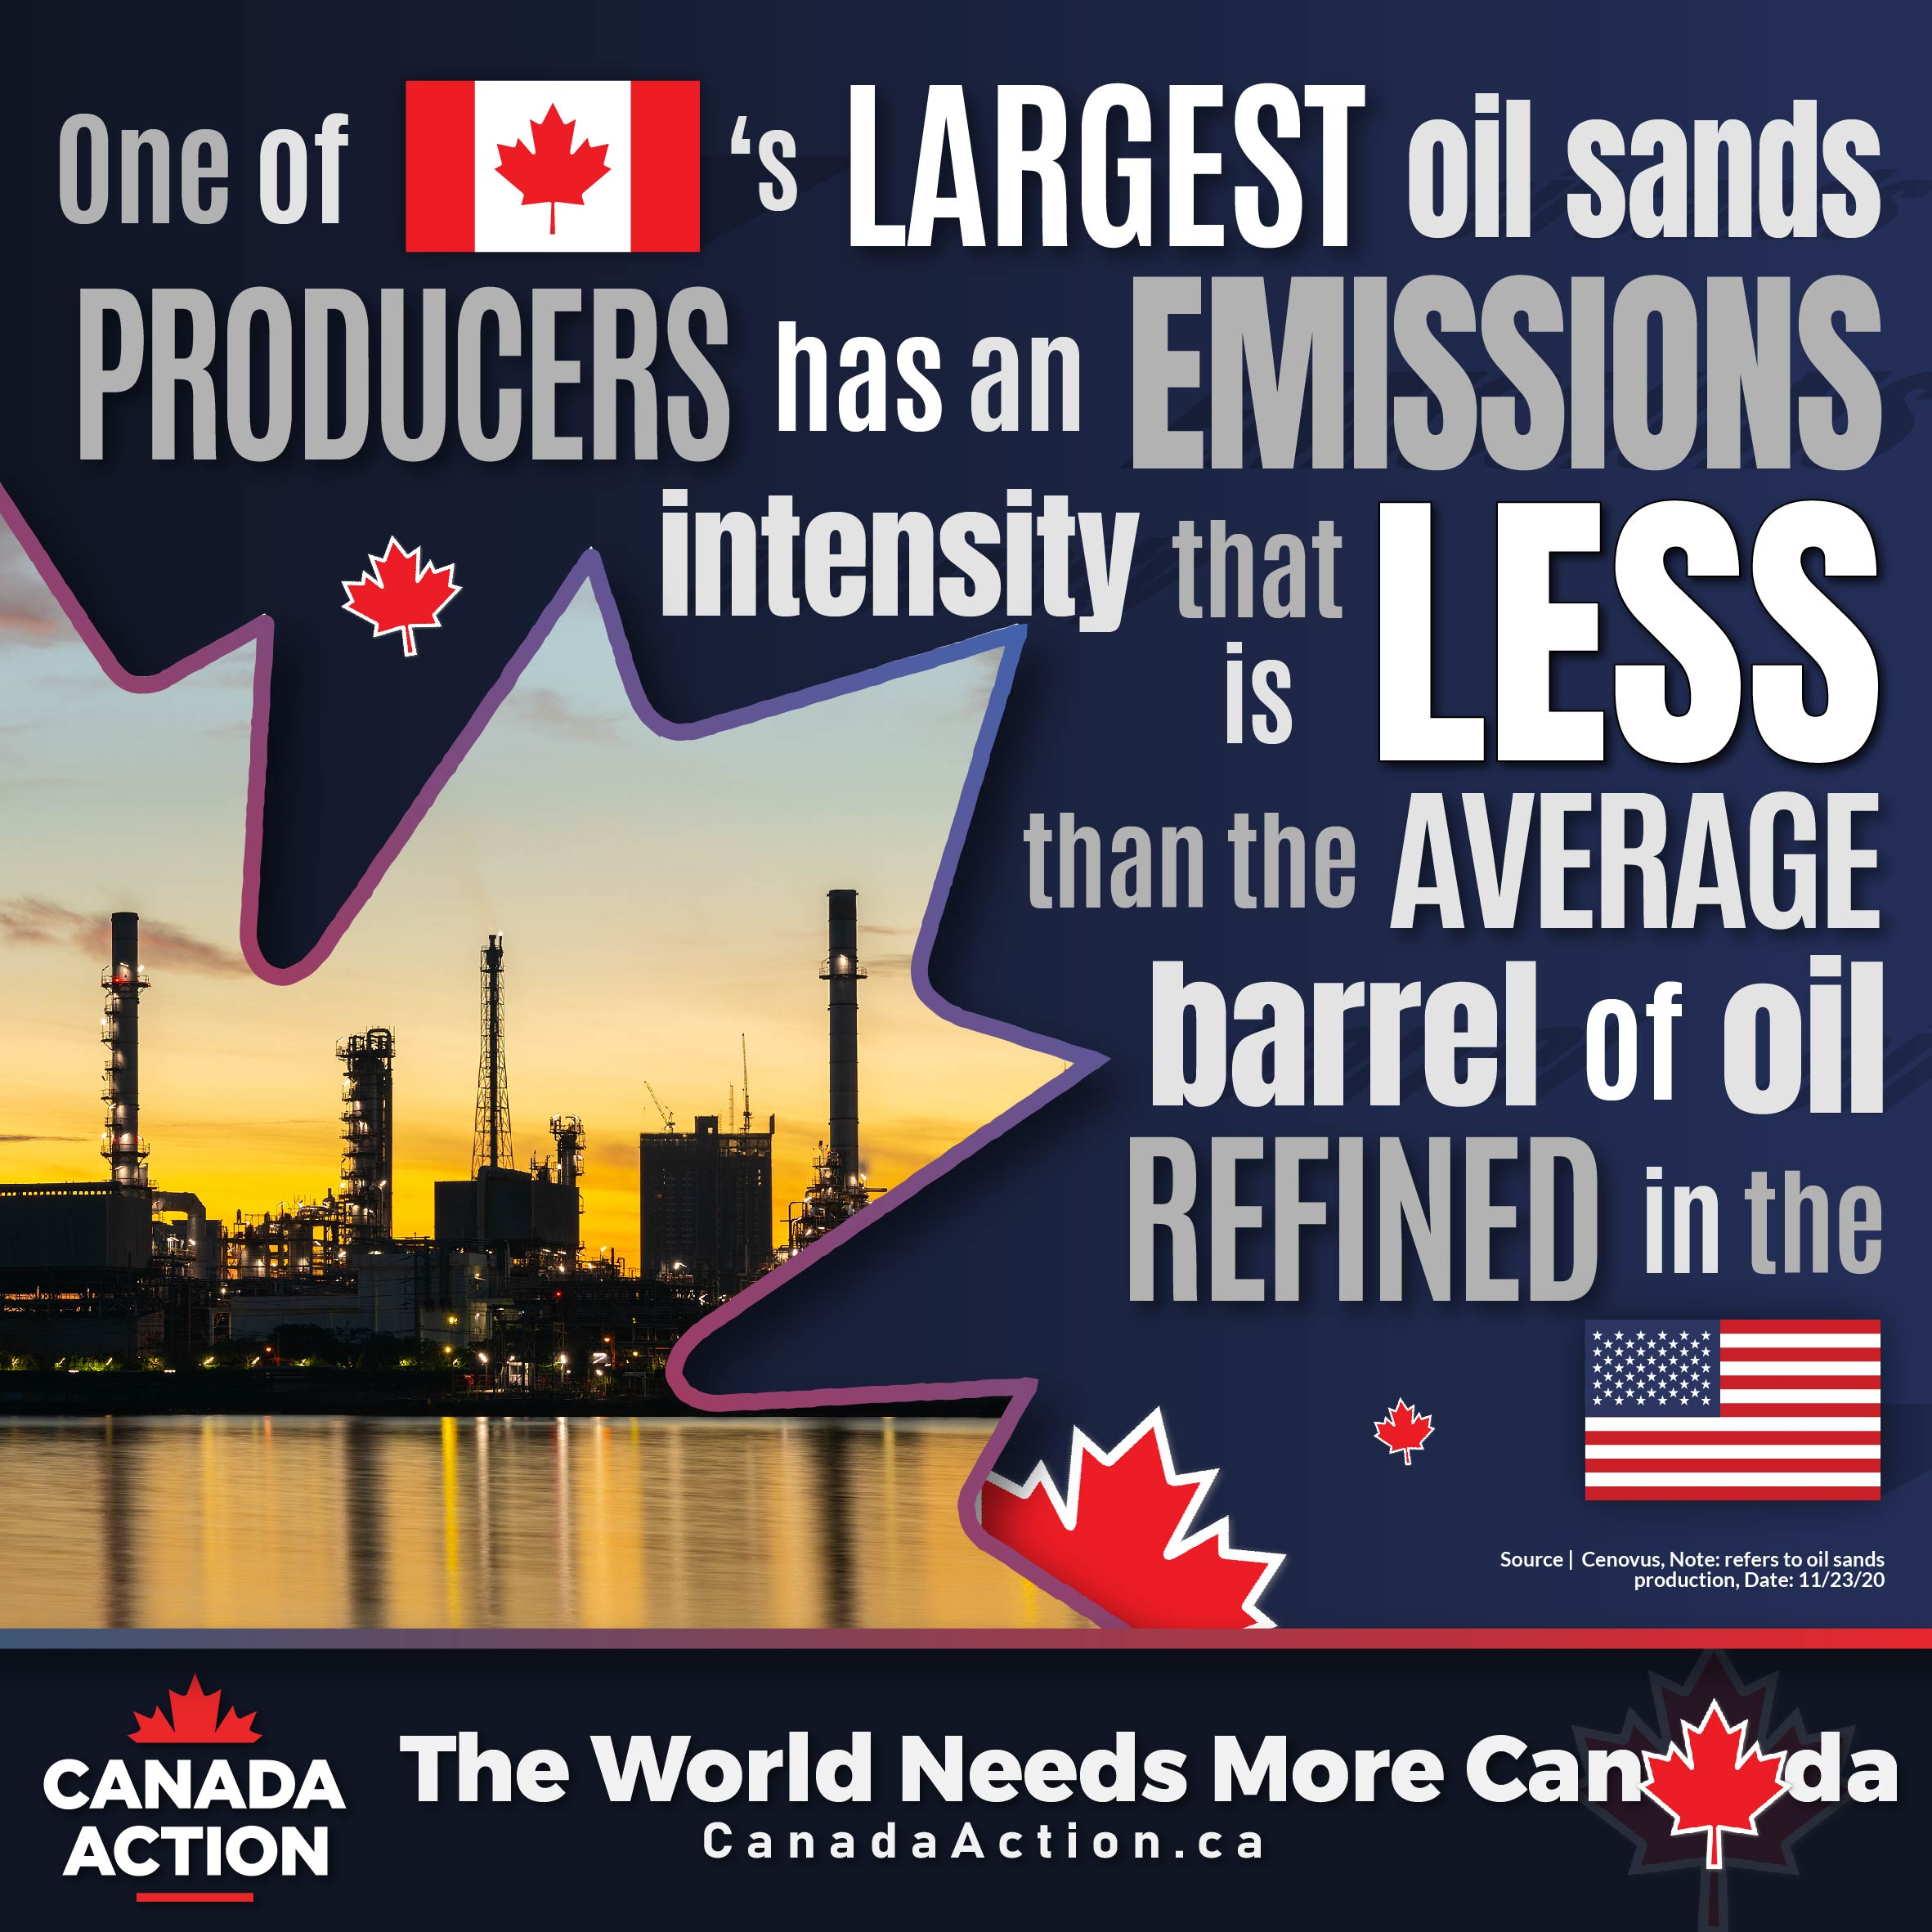 Canadian oilsands producers emission intensity reductions world-class